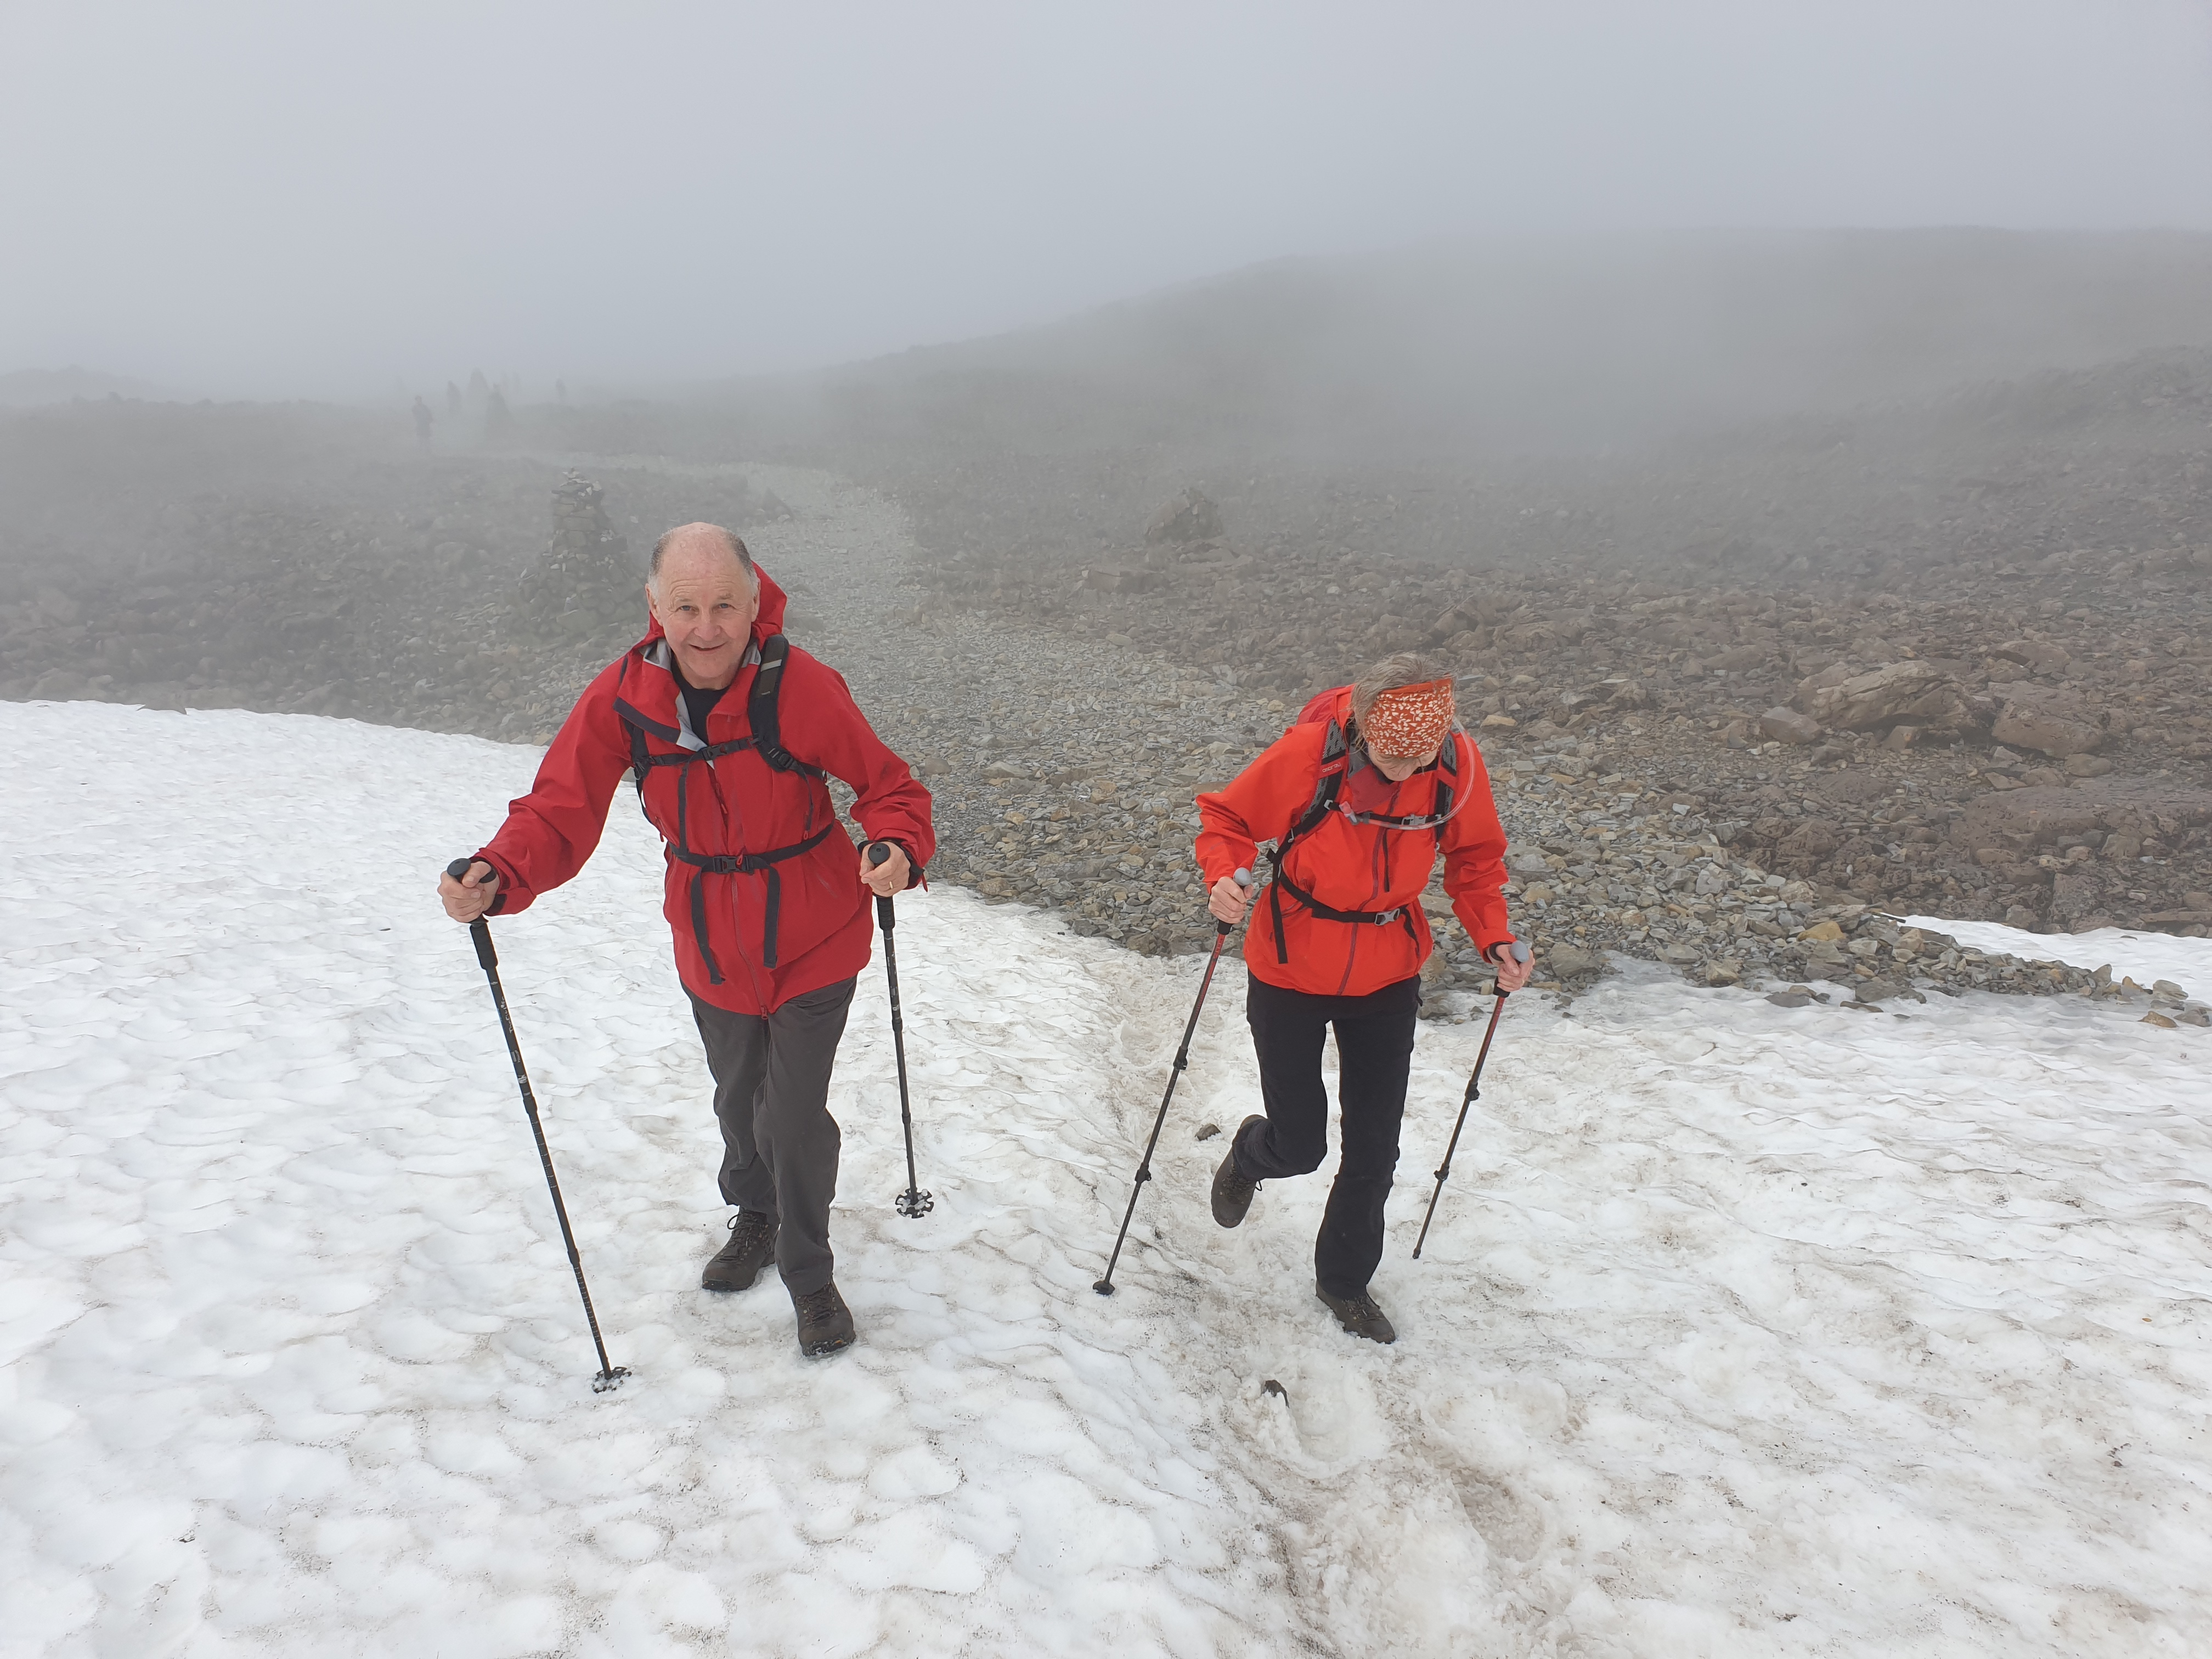 Summer snow on Ben Nevis. Book a Ben Nevis Guide to lead you to the summit